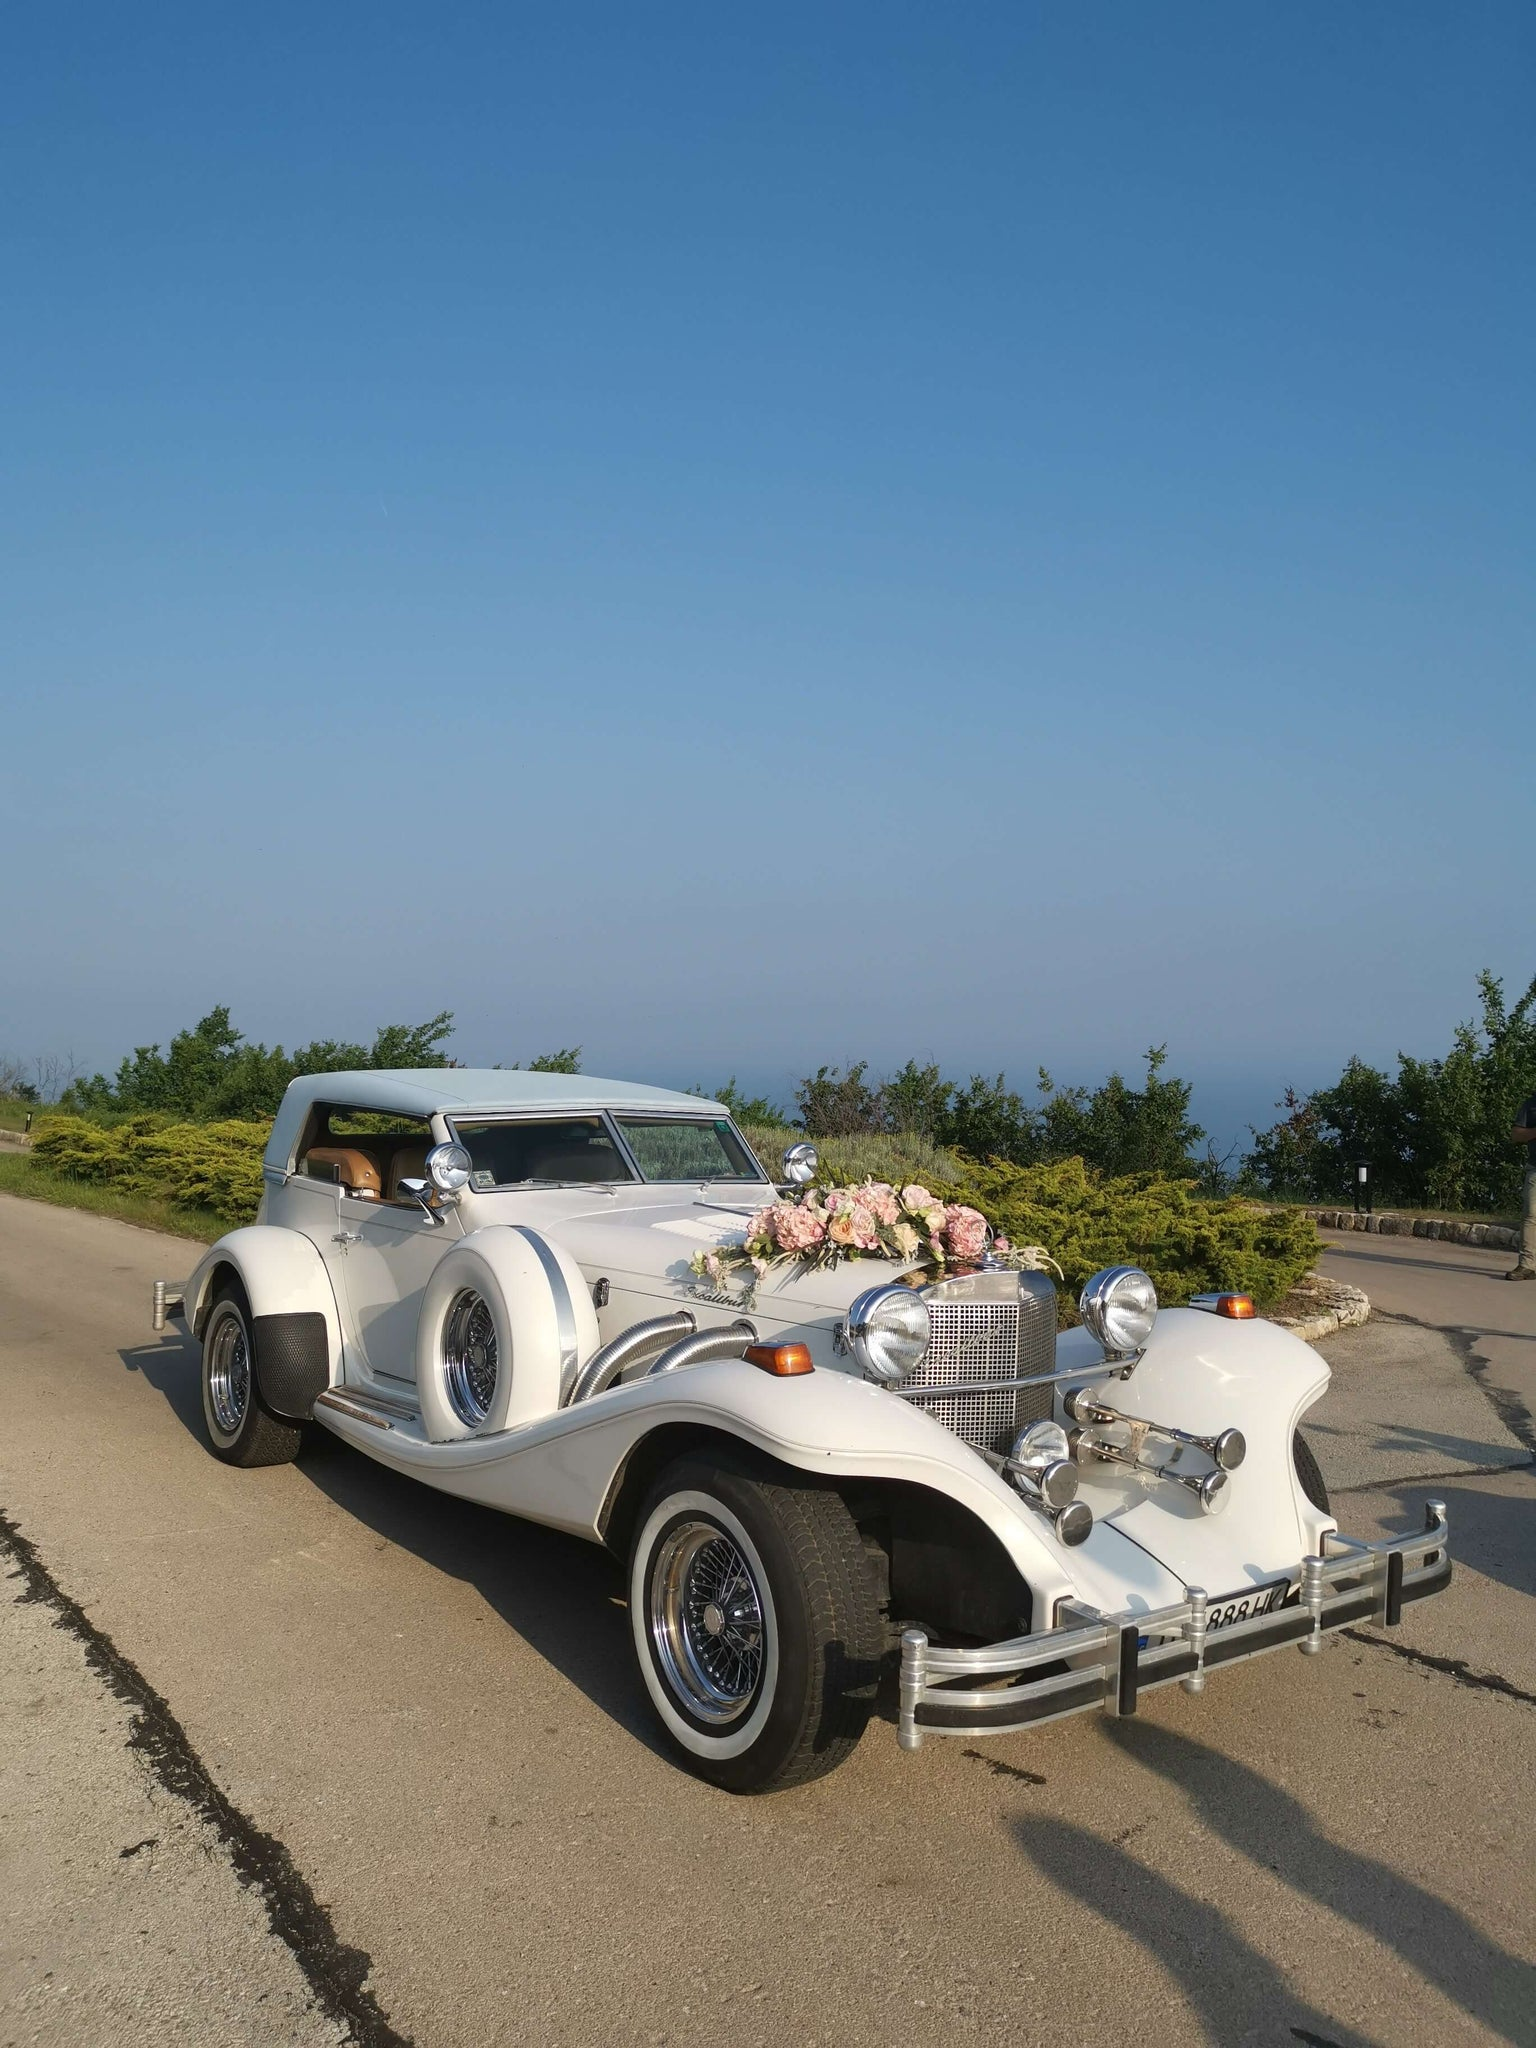 Wedding Car Decoration - Ways to Decorate Your Car for The Big Occasion